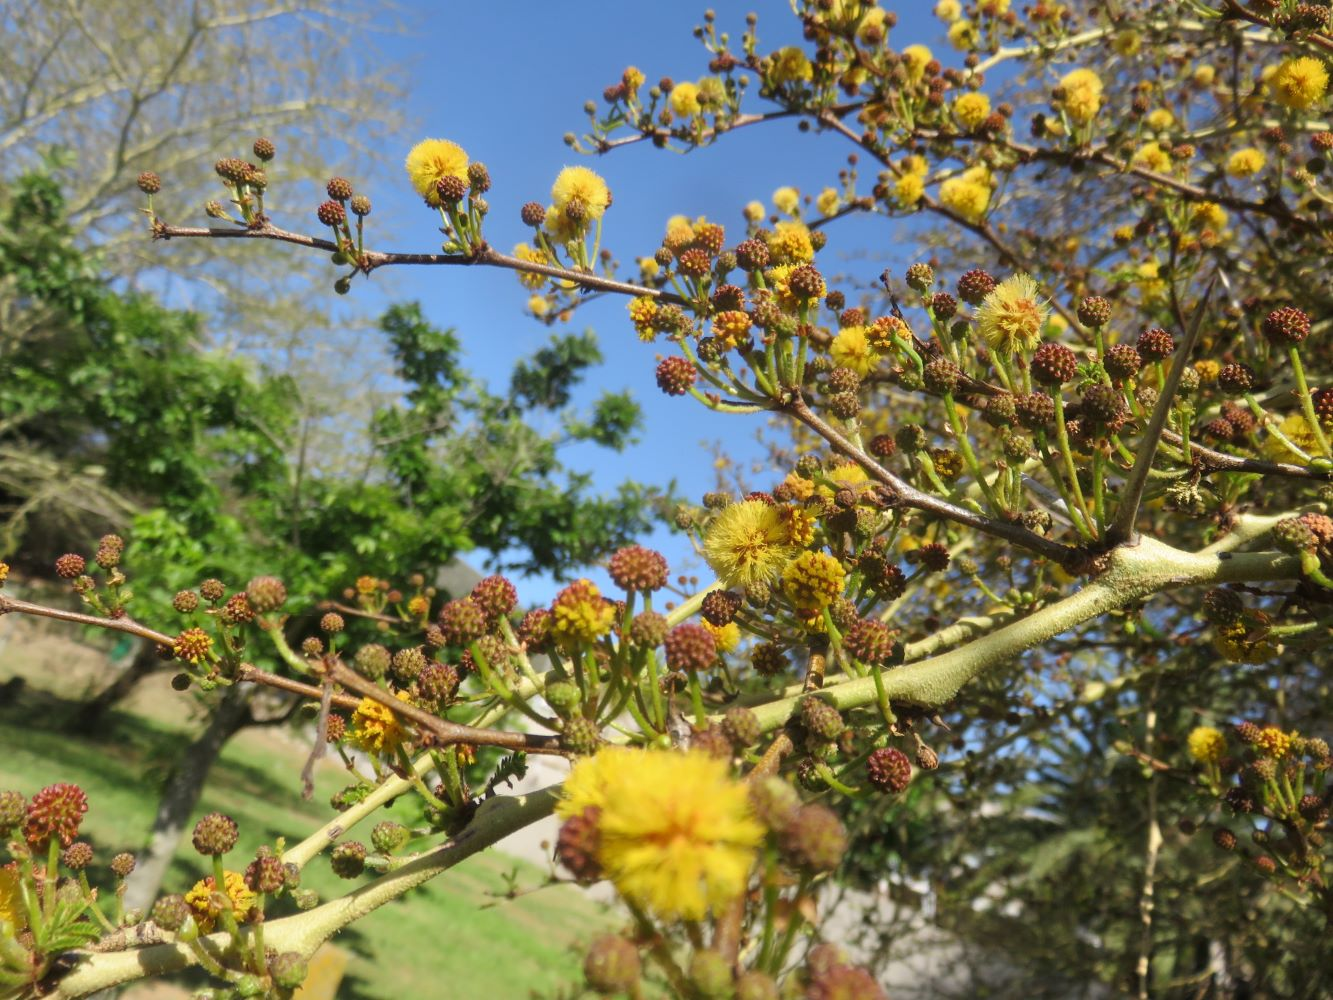 A thorn tree, this one is a green barked fever tree